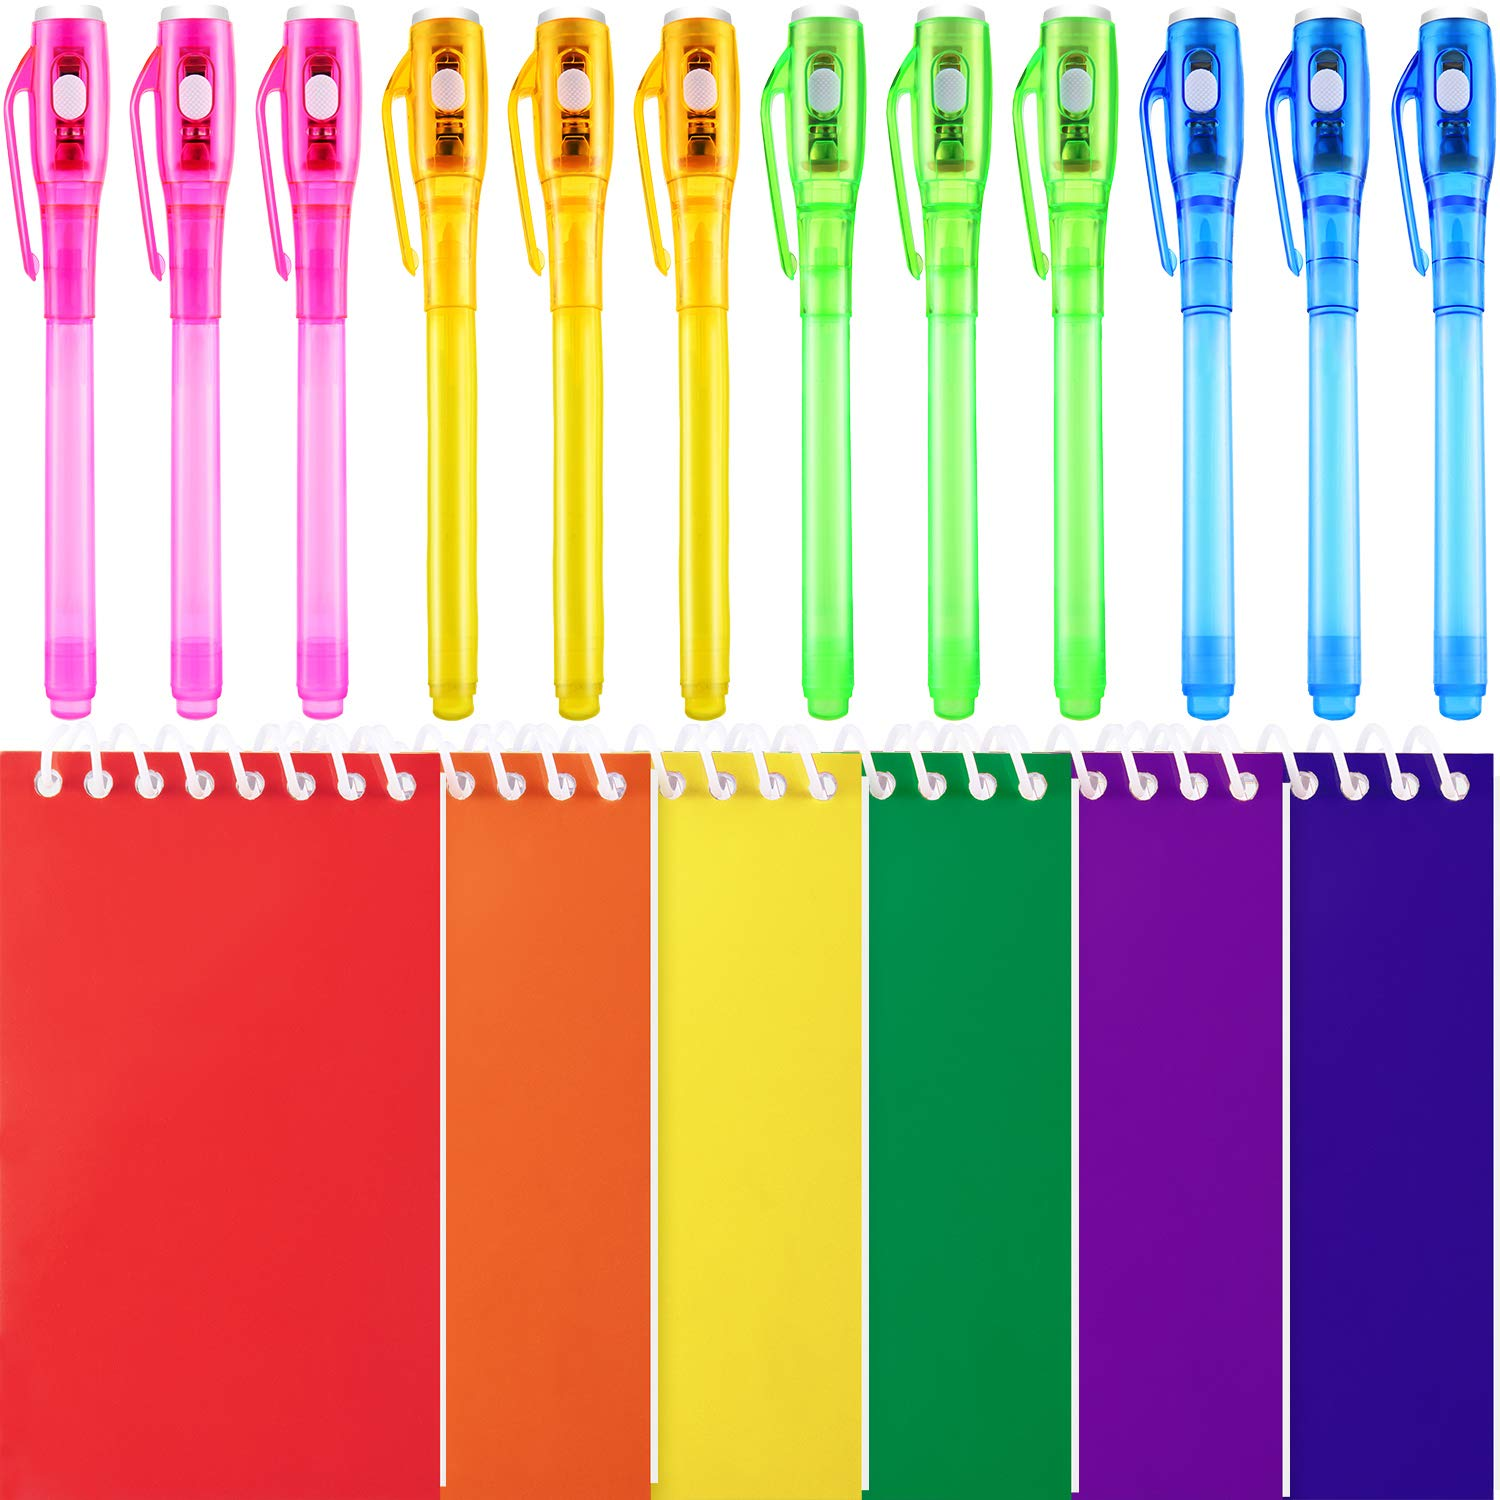 12 Pieces Invisible Ink Pen with UV Light and 6 Pieces Mini Memo Notepads for Birthday Party Gift Favors